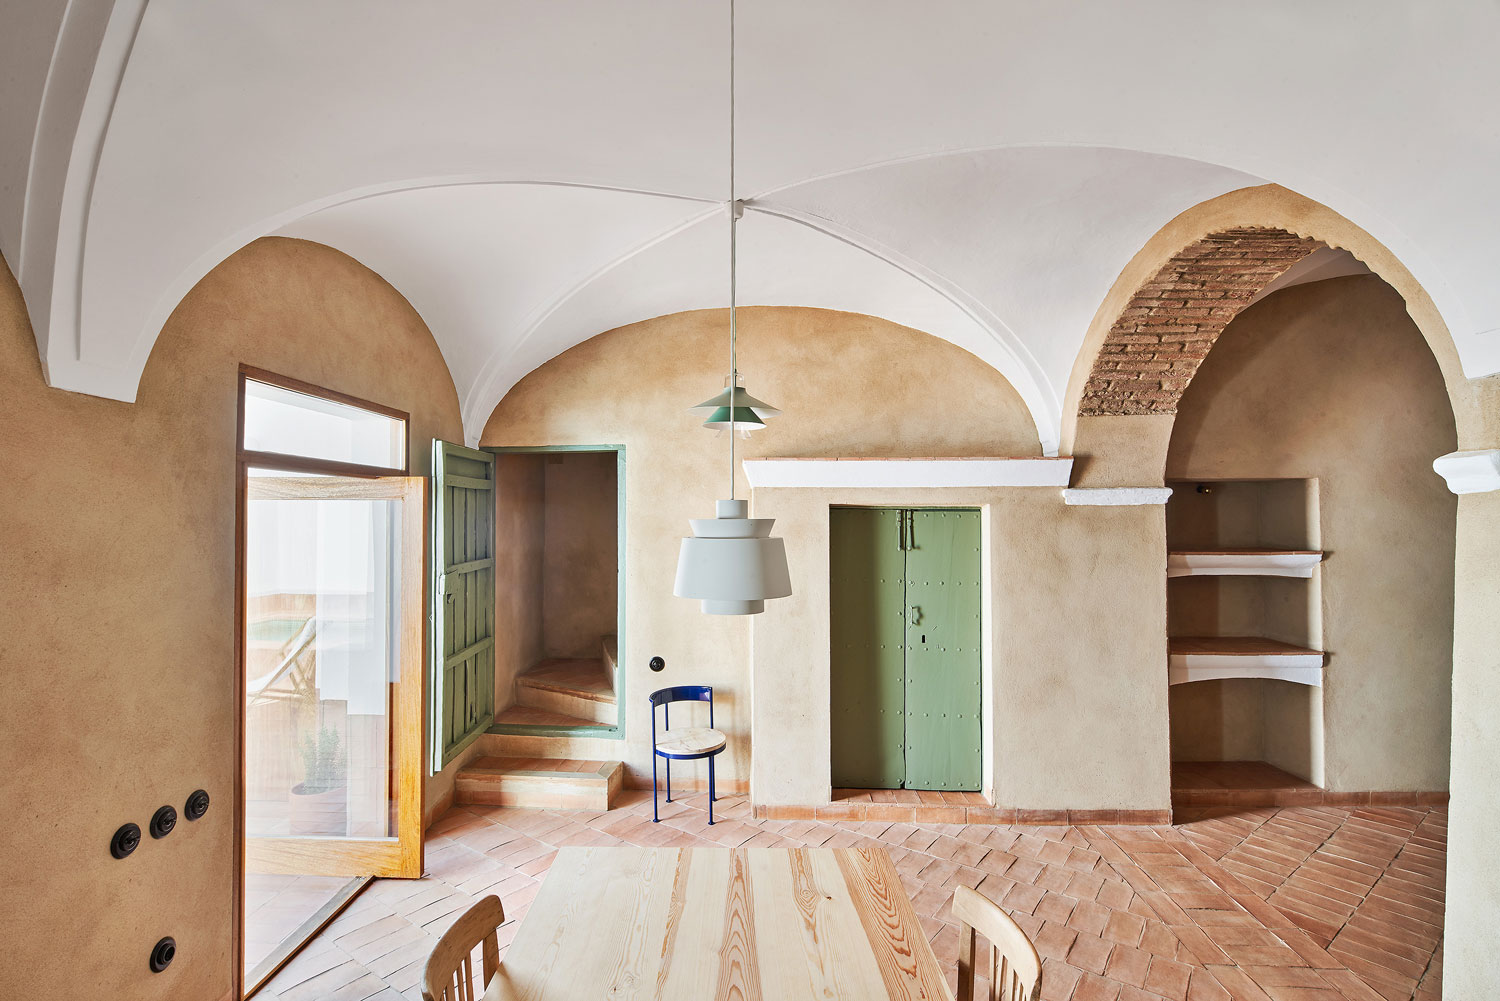 A Guesthouse In Spain Turned To A Peaceful Design Abode - WWW.AUTHENTICINTERIOR.COM Interior & Design Blog